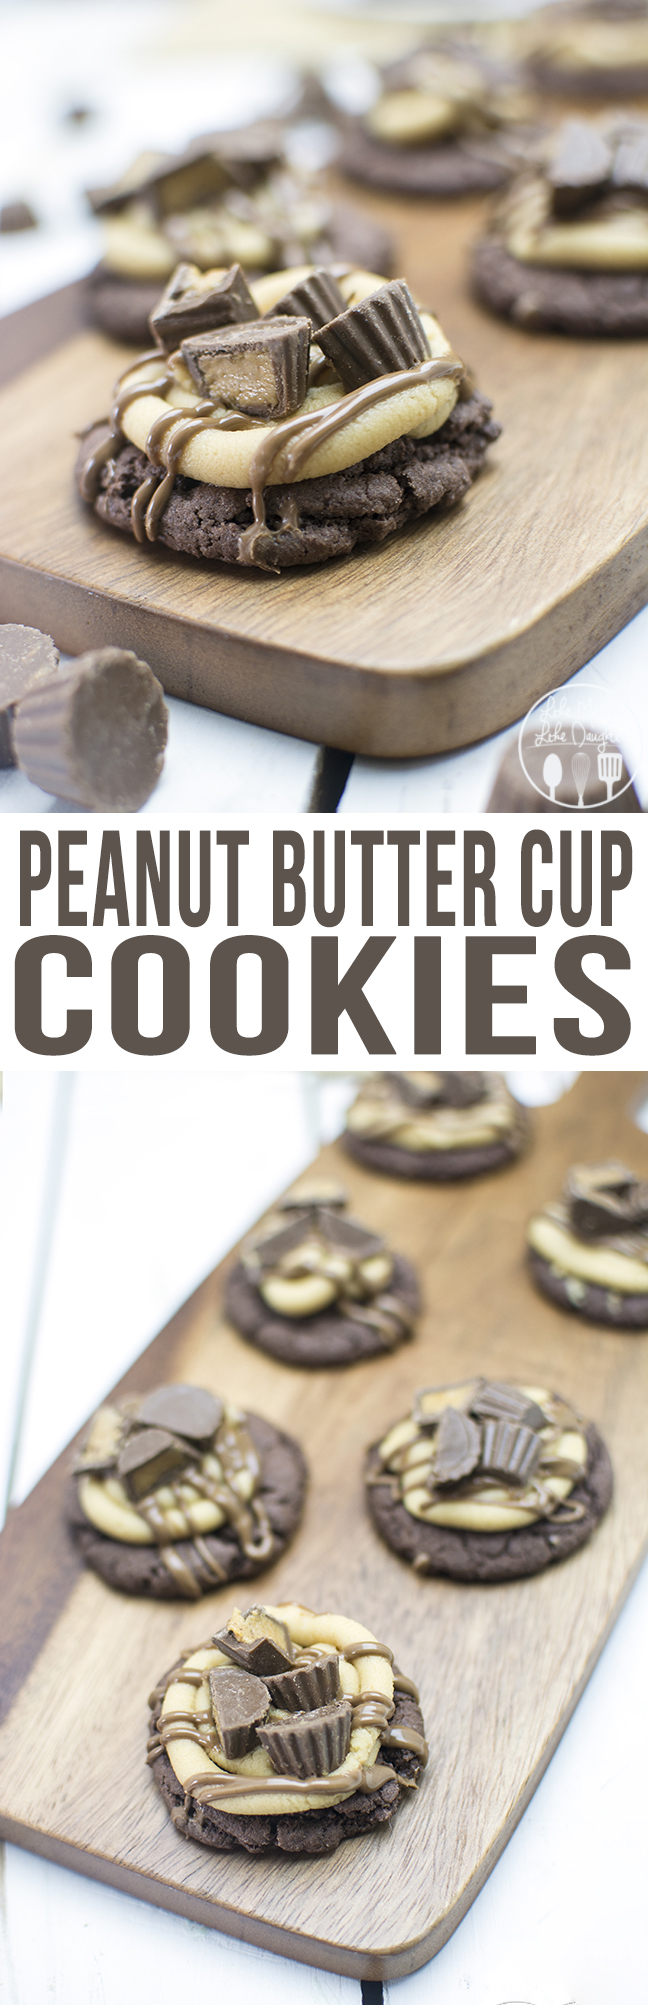 Peanut Butter Cup Cookies - These cookies combine the great taste of peanut butter cups in cookie form, with a simple cake mix cookie base, creamy peanut butter buttercream, chocolate peanut butter ganache, all topped with chopped up peanut butter cups. These just might be my new favorite cookie.